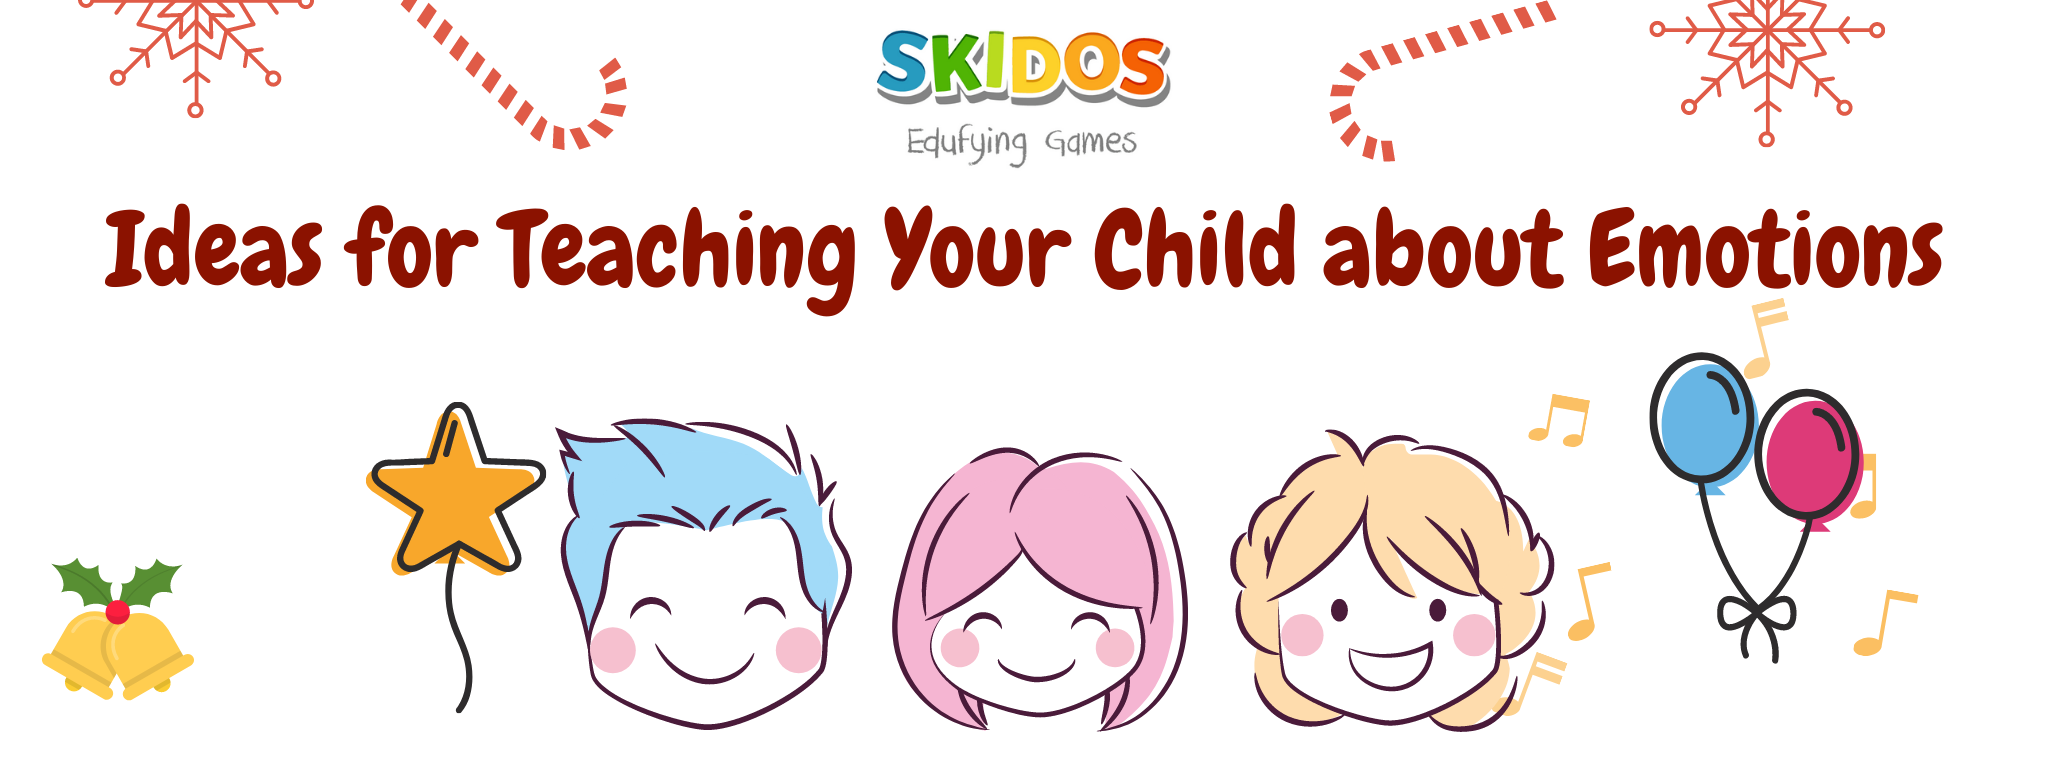 Ideas for Teaching Your Child about Emotions